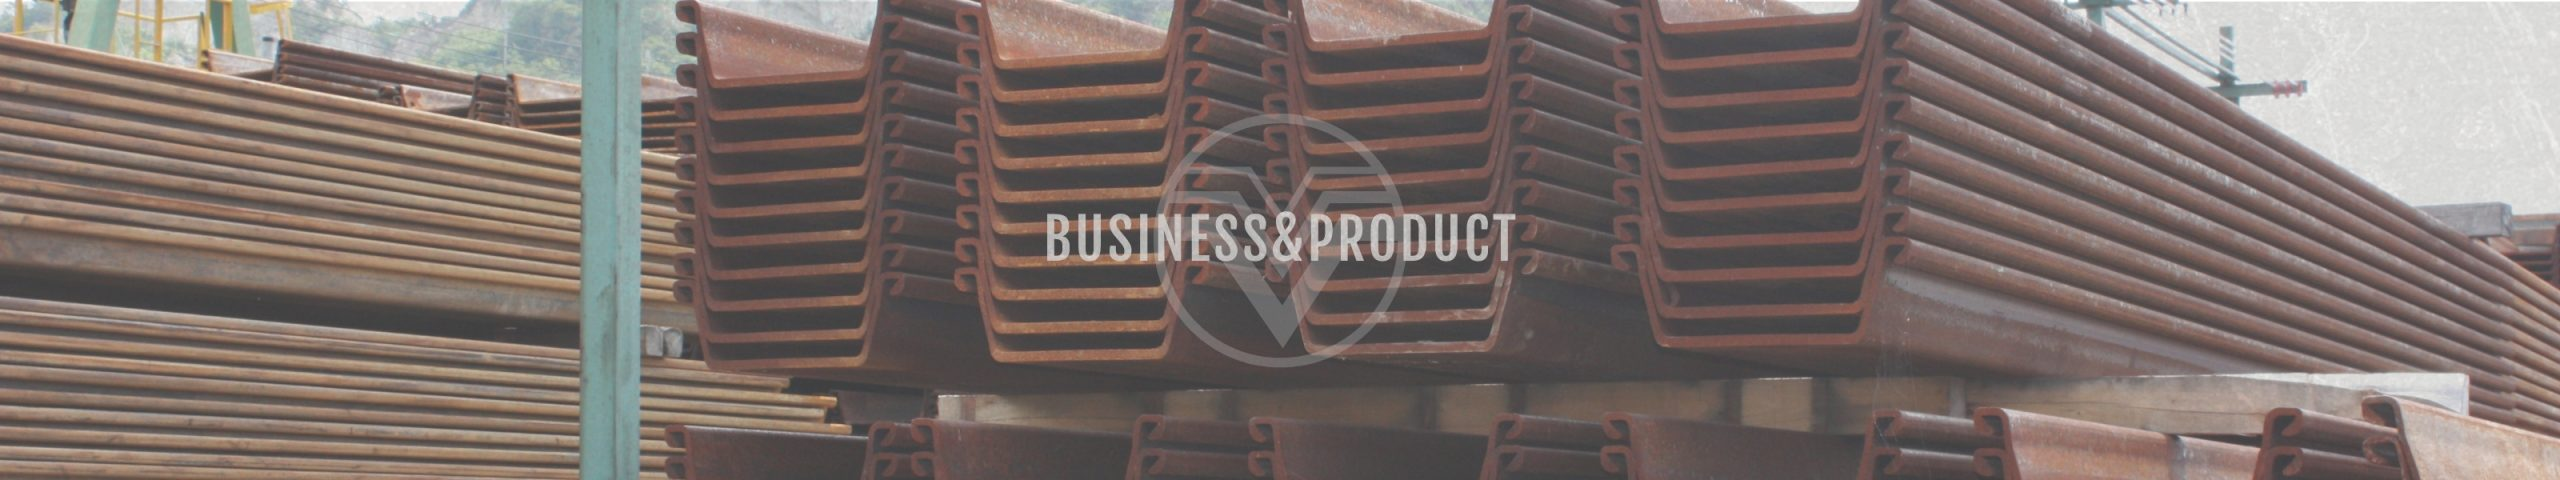 BUSINESS & PRODUCT